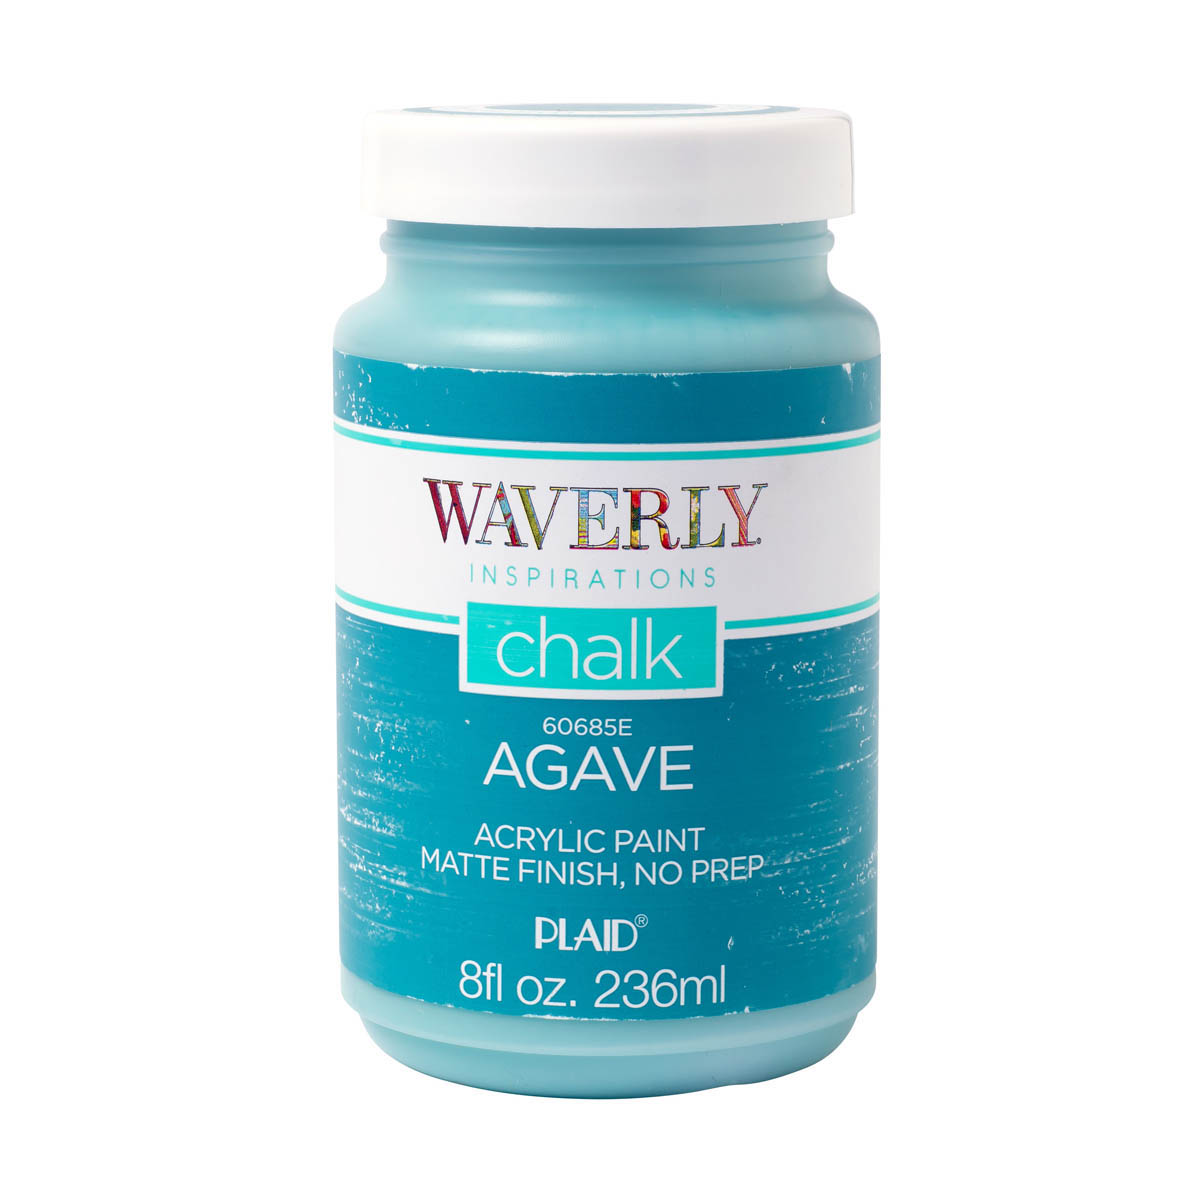 Waverly ® Inspirations Chalk Acrylic Paint - Agave, 8 oz.